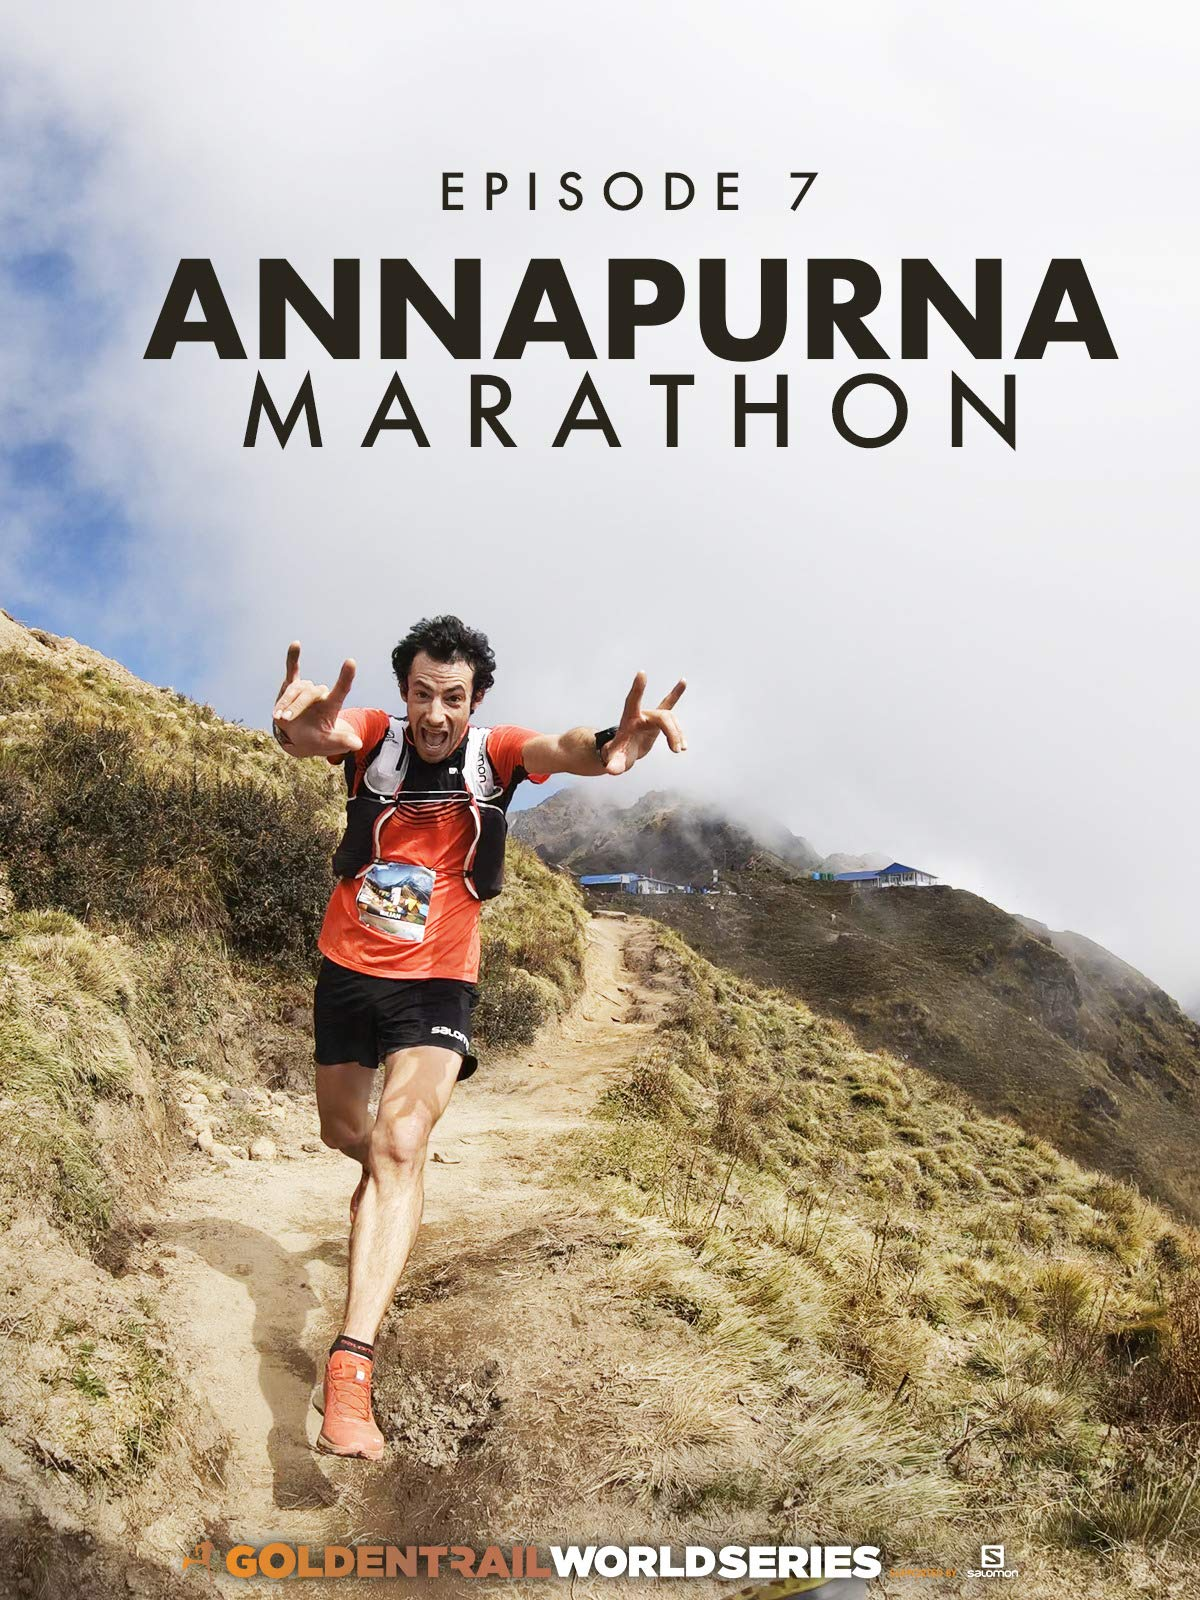 Golden Trail World Series - Episode 7 - Annapurna Marathon on Amazon Prime Instant Video UK